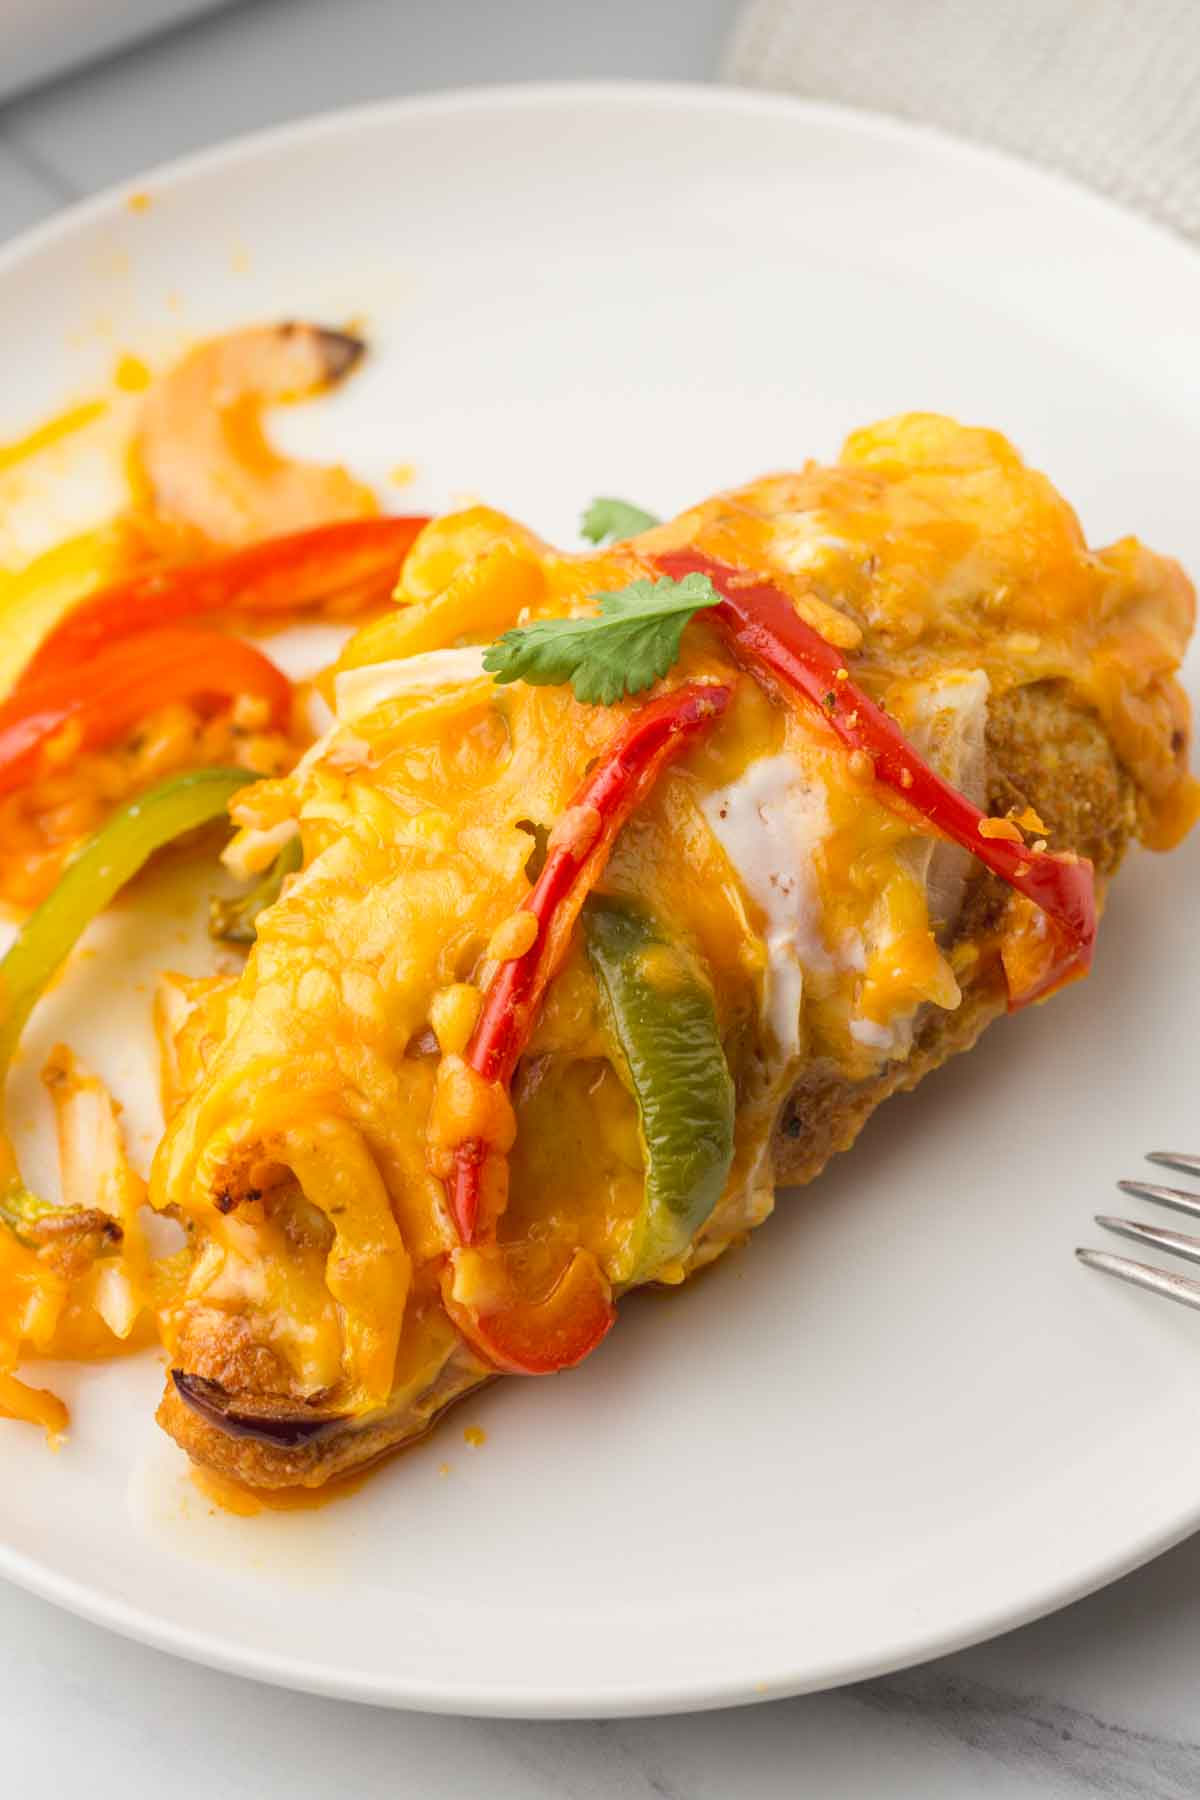 Chicken breast with fajita bell peppers and cheese, served in a white plate